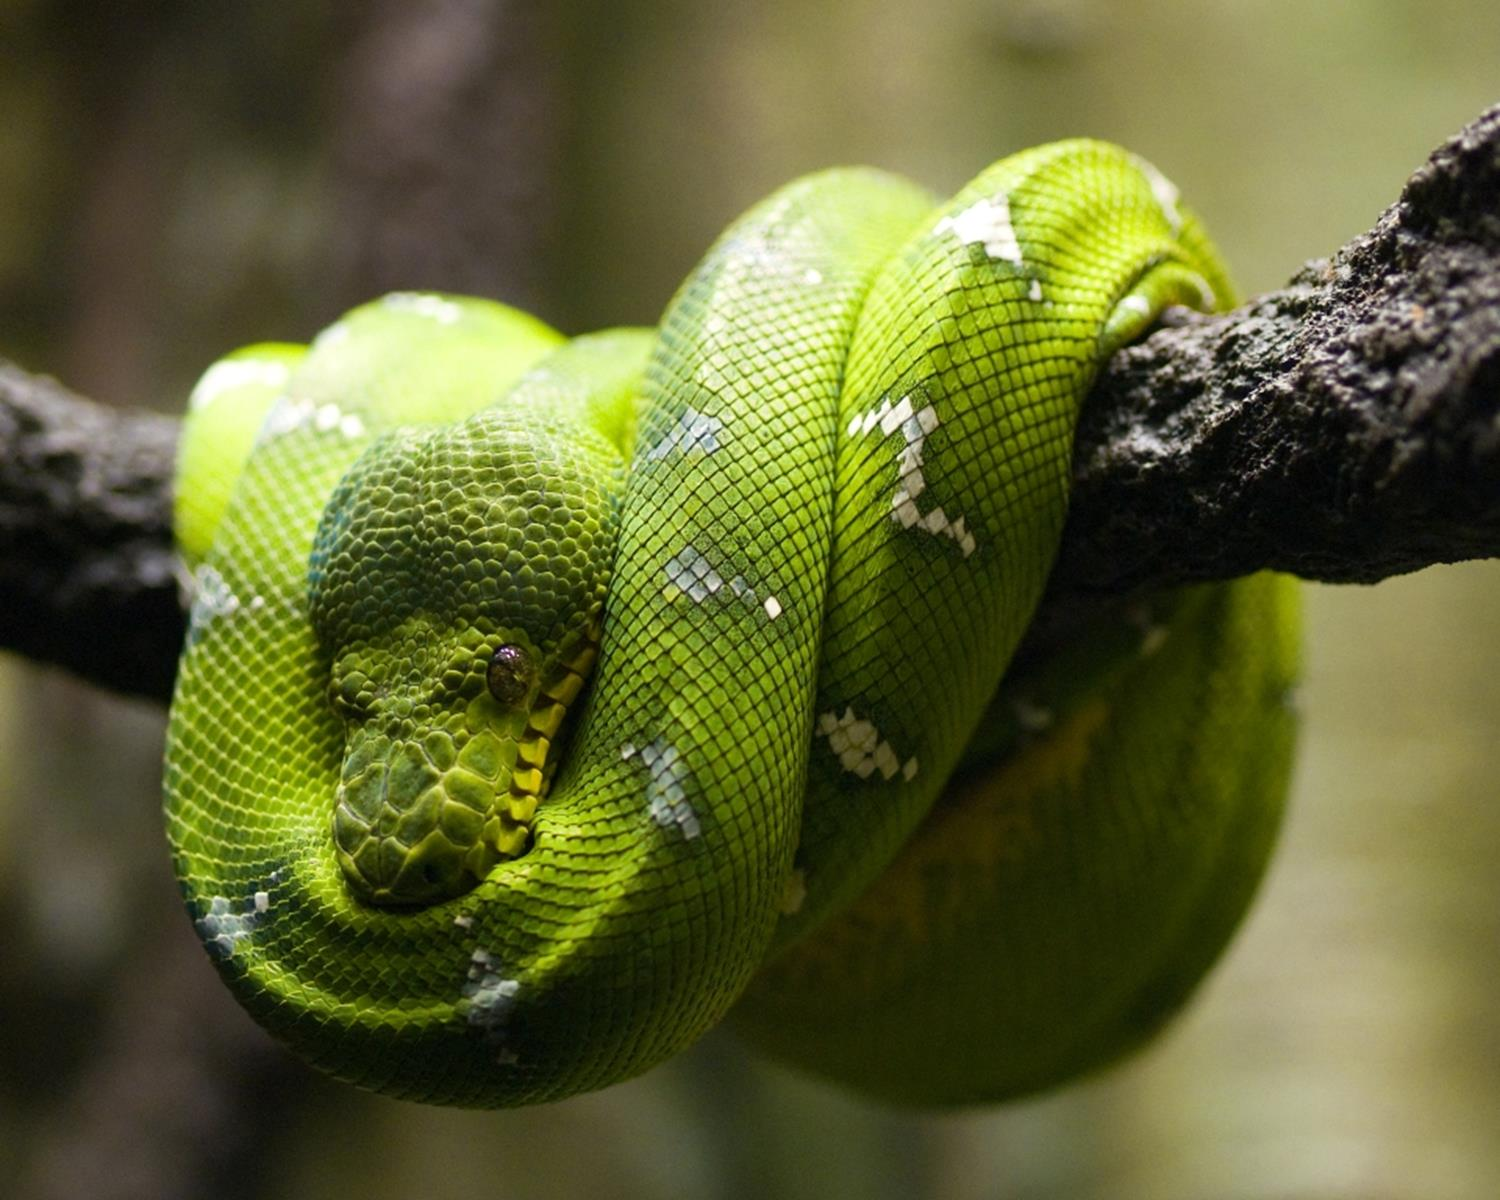 An Emerald Tree Boa at Clyde Peeling's Reptiland. Credit: Mrweatherbee at en.wikipedia